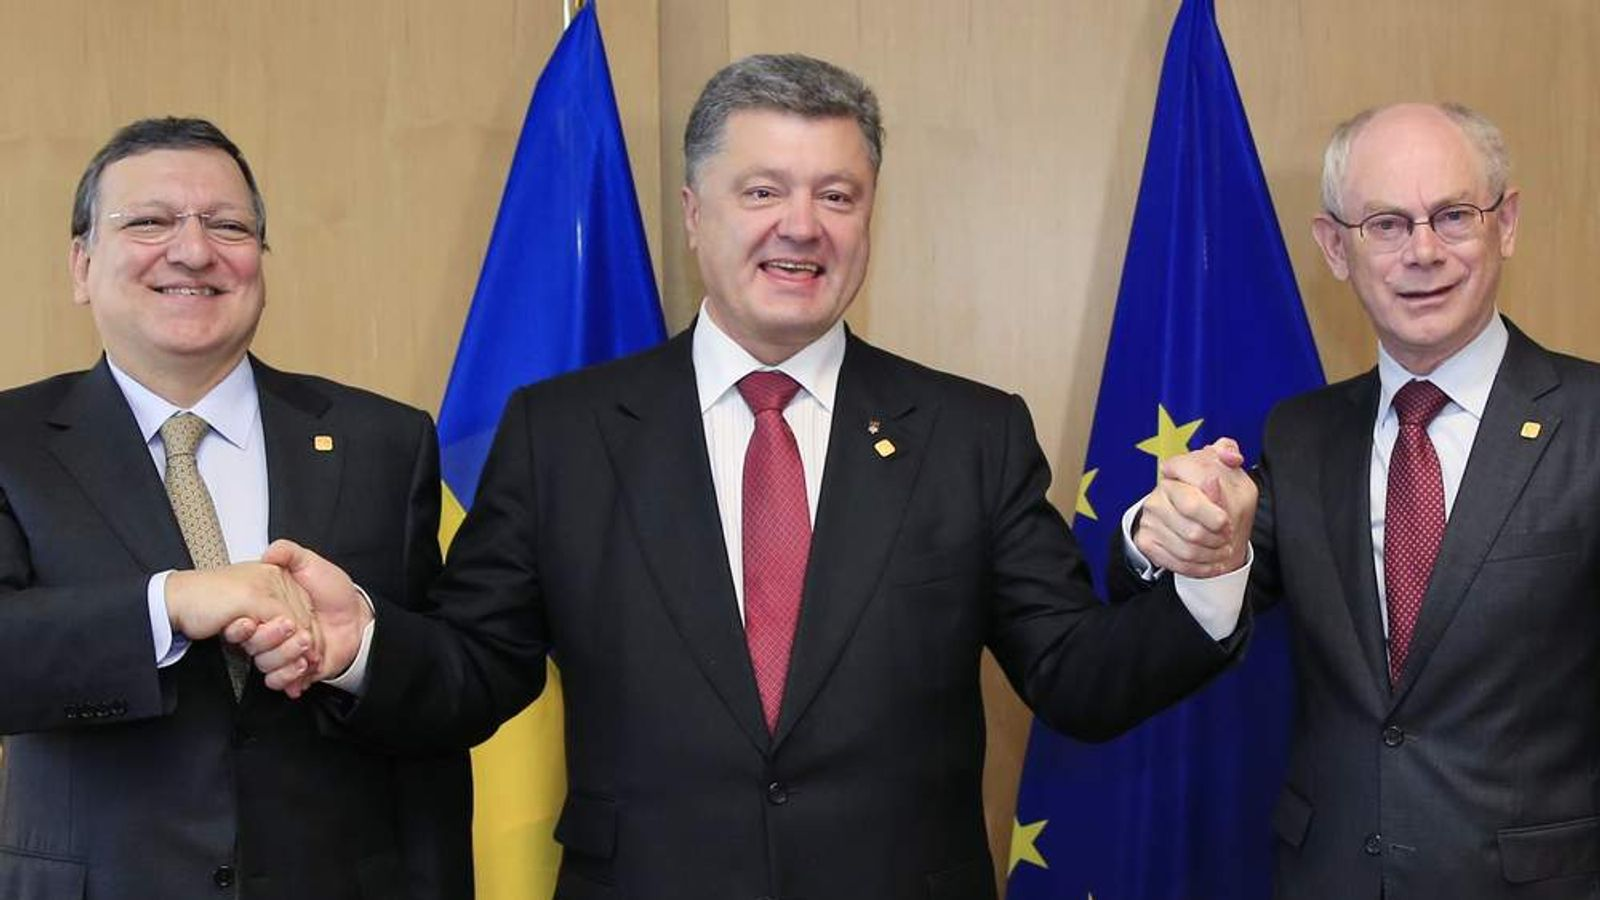 Ukraine's President Petro Poroshenko poses with European Commission president Jose Manuel Barroso and European Council president Herman Van Rompuy at the EU Council